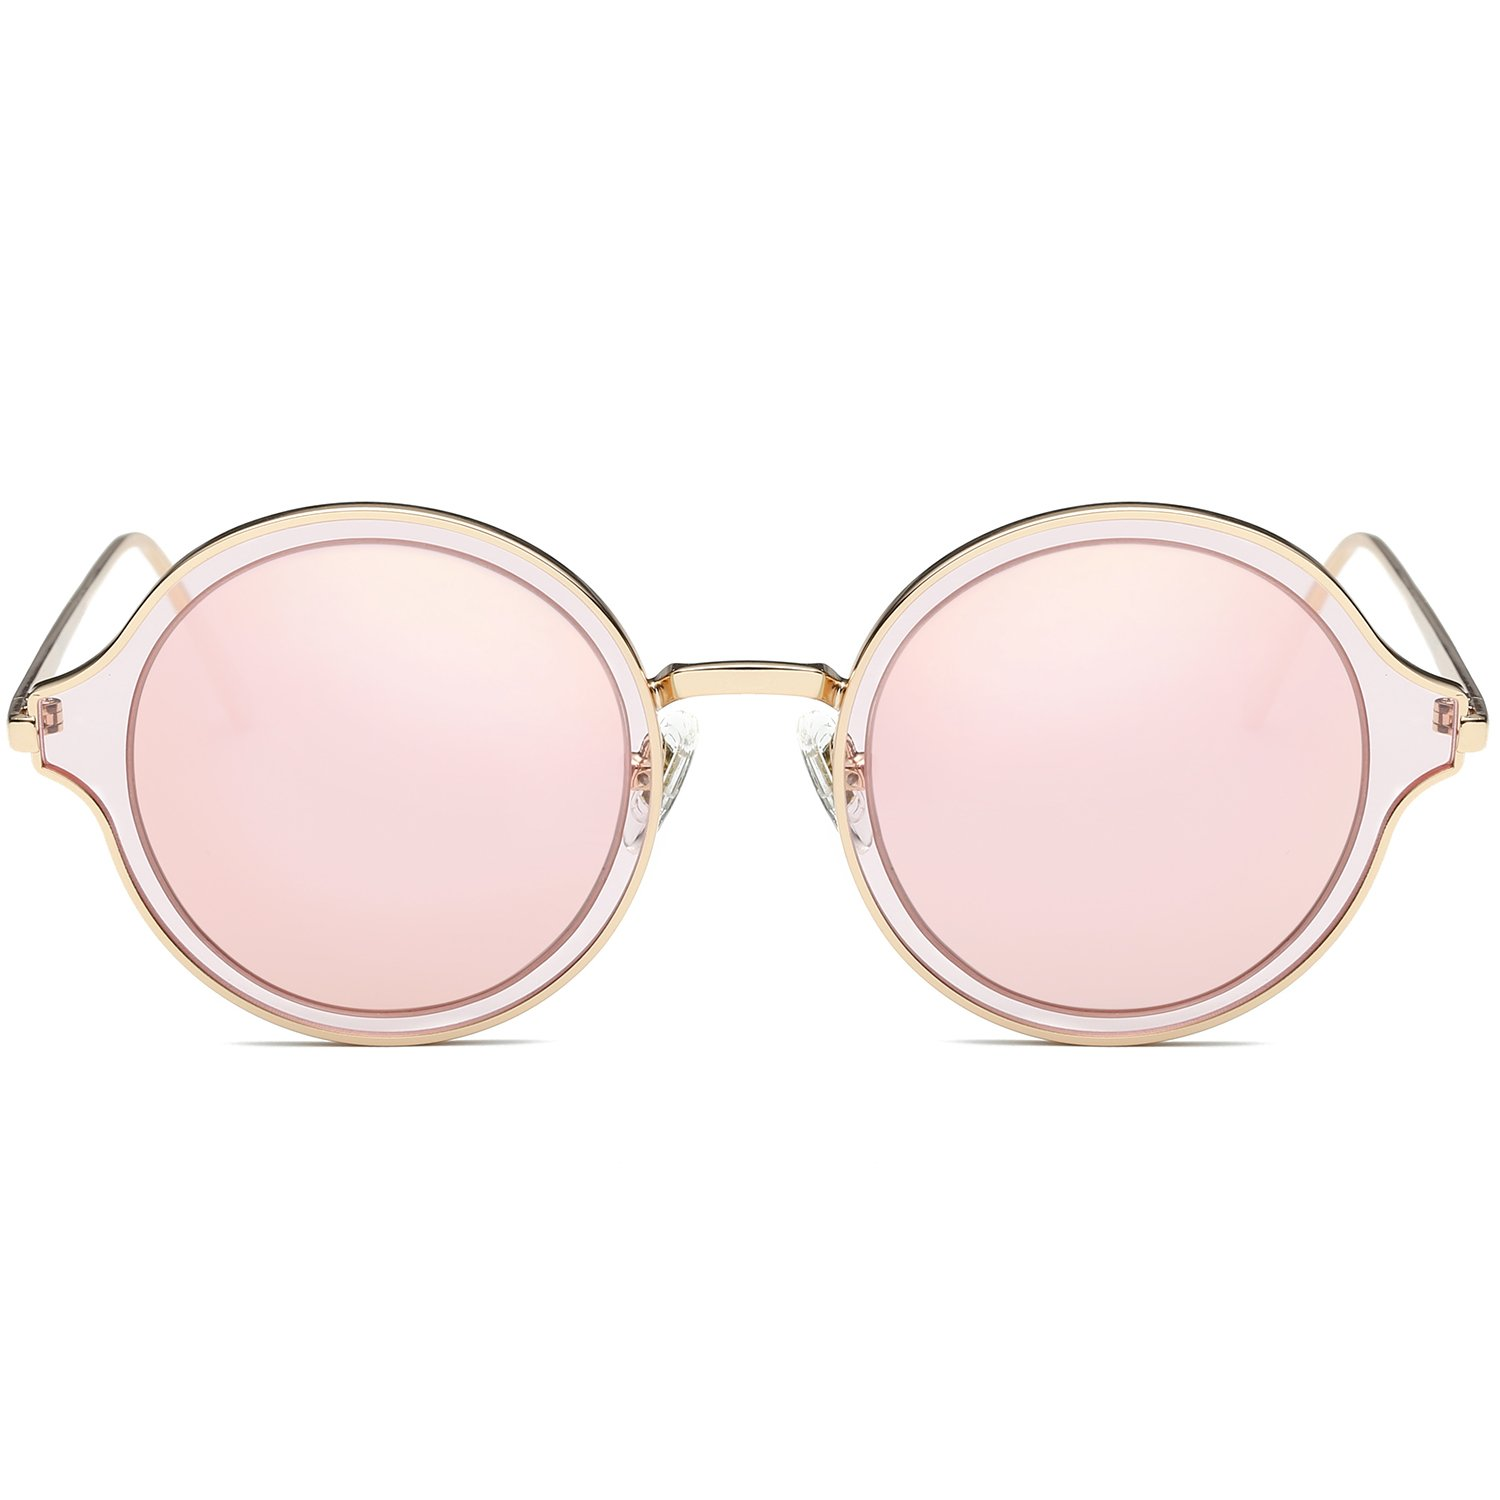 SOJOS Round Polarized Sunglasses Metal Frame Flat Lens Unisex Glasses SJ1058 with Gold Frame/Pink Mirrored Lens by SOJOS